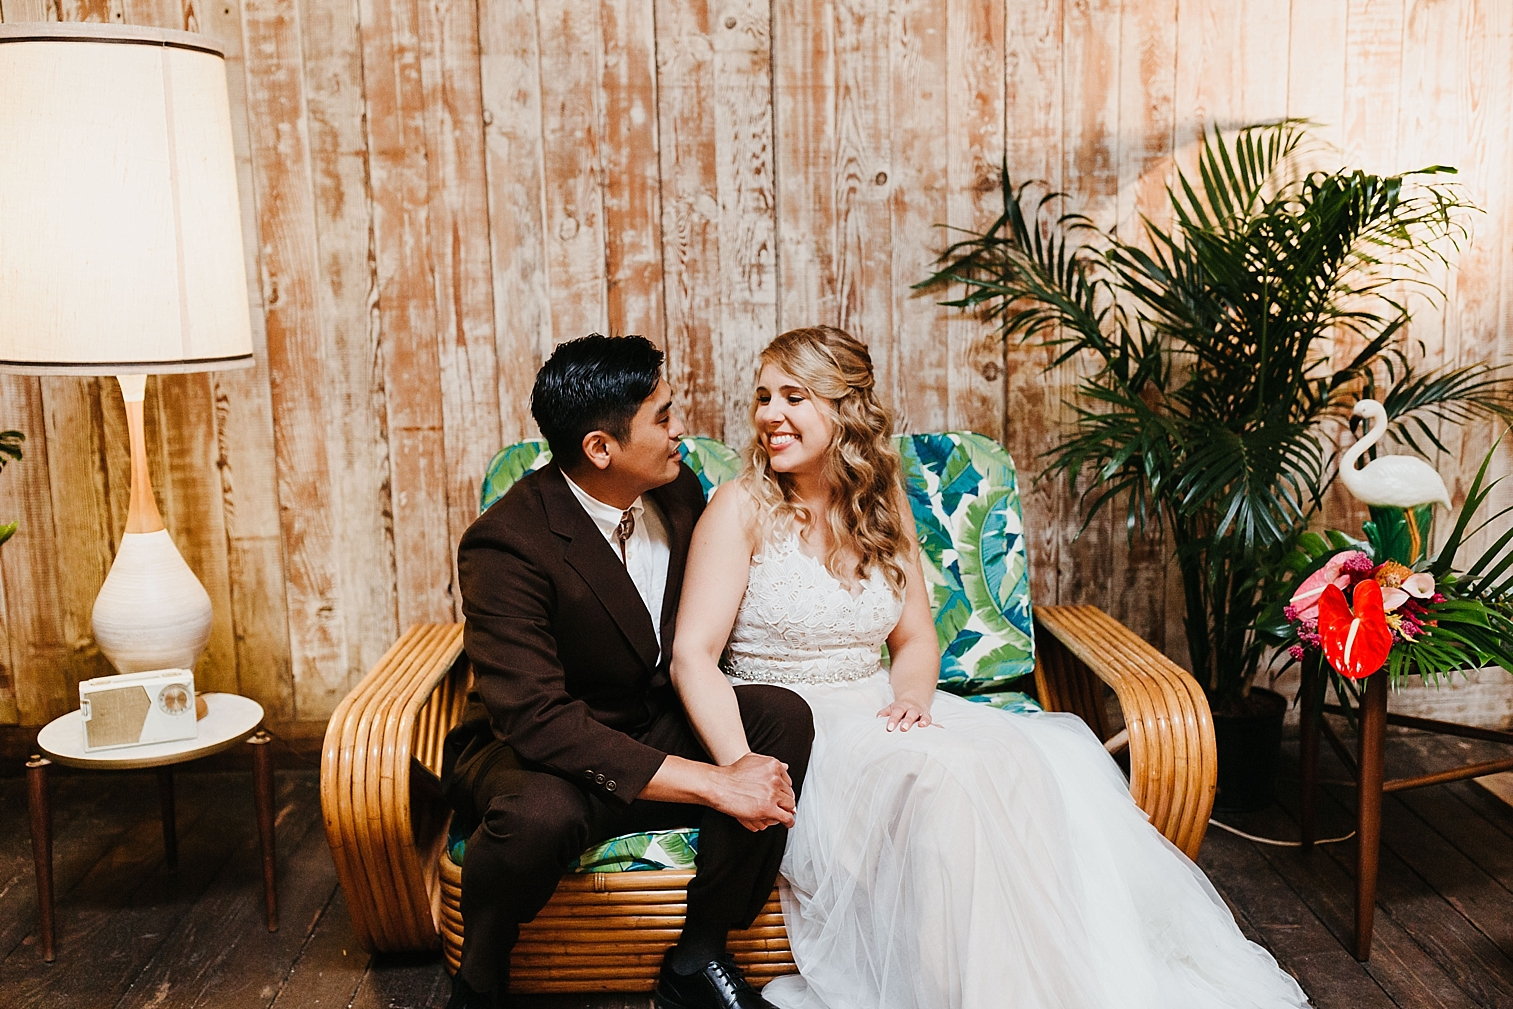 Tropical-Vintage-Within-Sodo-Wedding-57.jpg